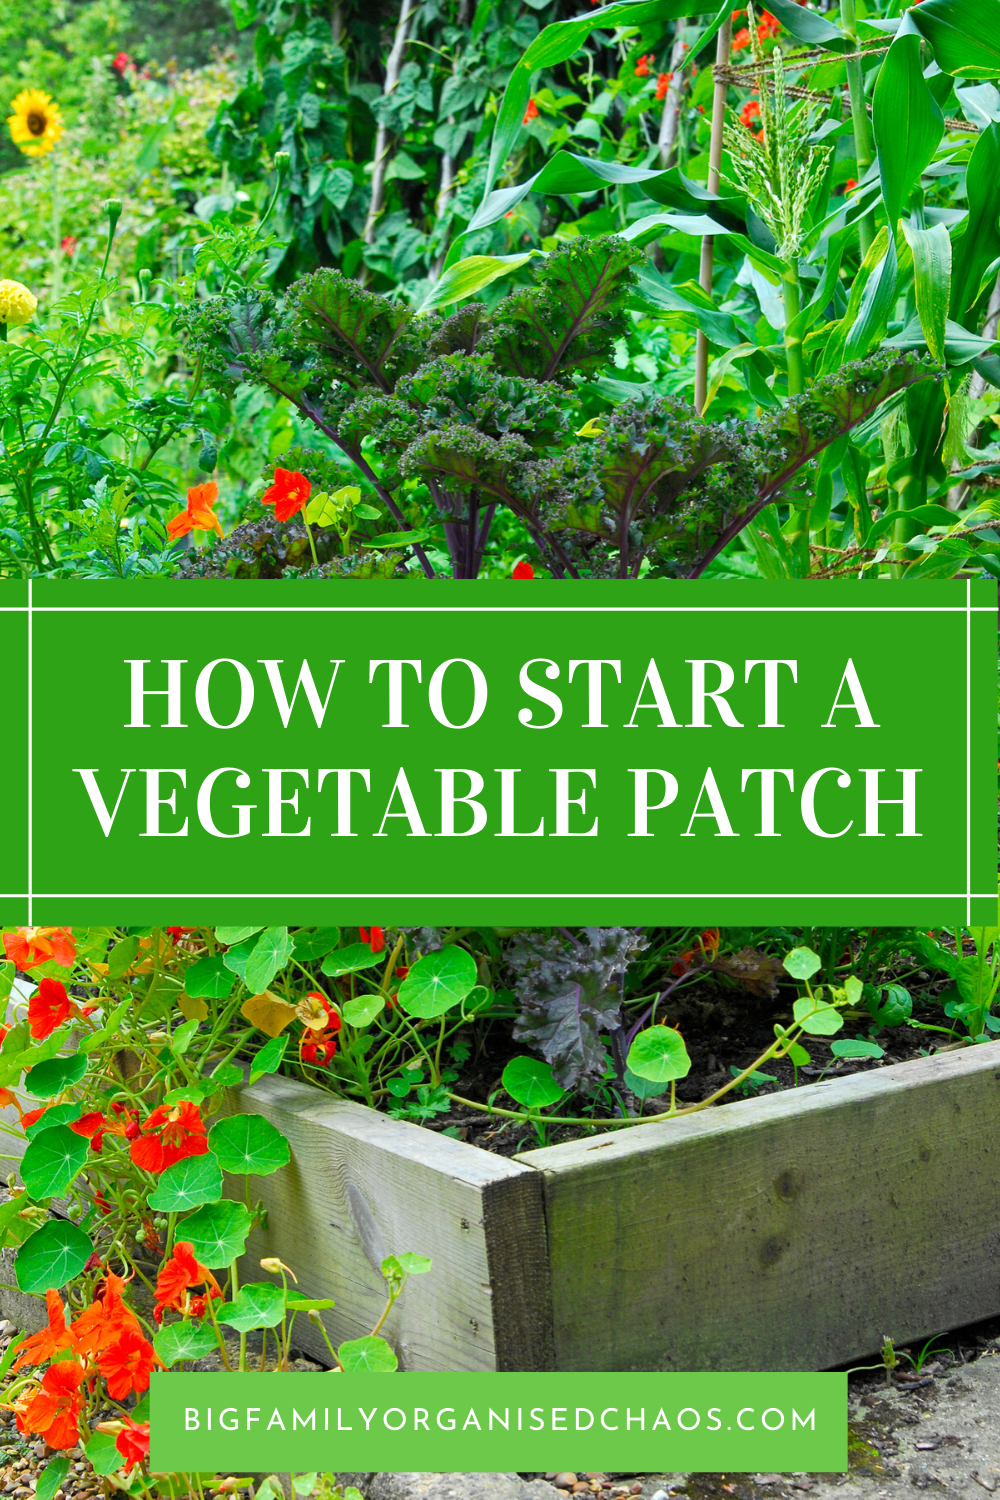 4 Vegetable Garden Tips for Beginners is part of Vegetable garden tips, Starting a vegetable garden, Gardening for kids, Gardening tips, Veg patch, Growing vegetables - With food not as easy to get hold off at the moment, check out these Vegetable Garden Tips for Beginners if you want to grow your own